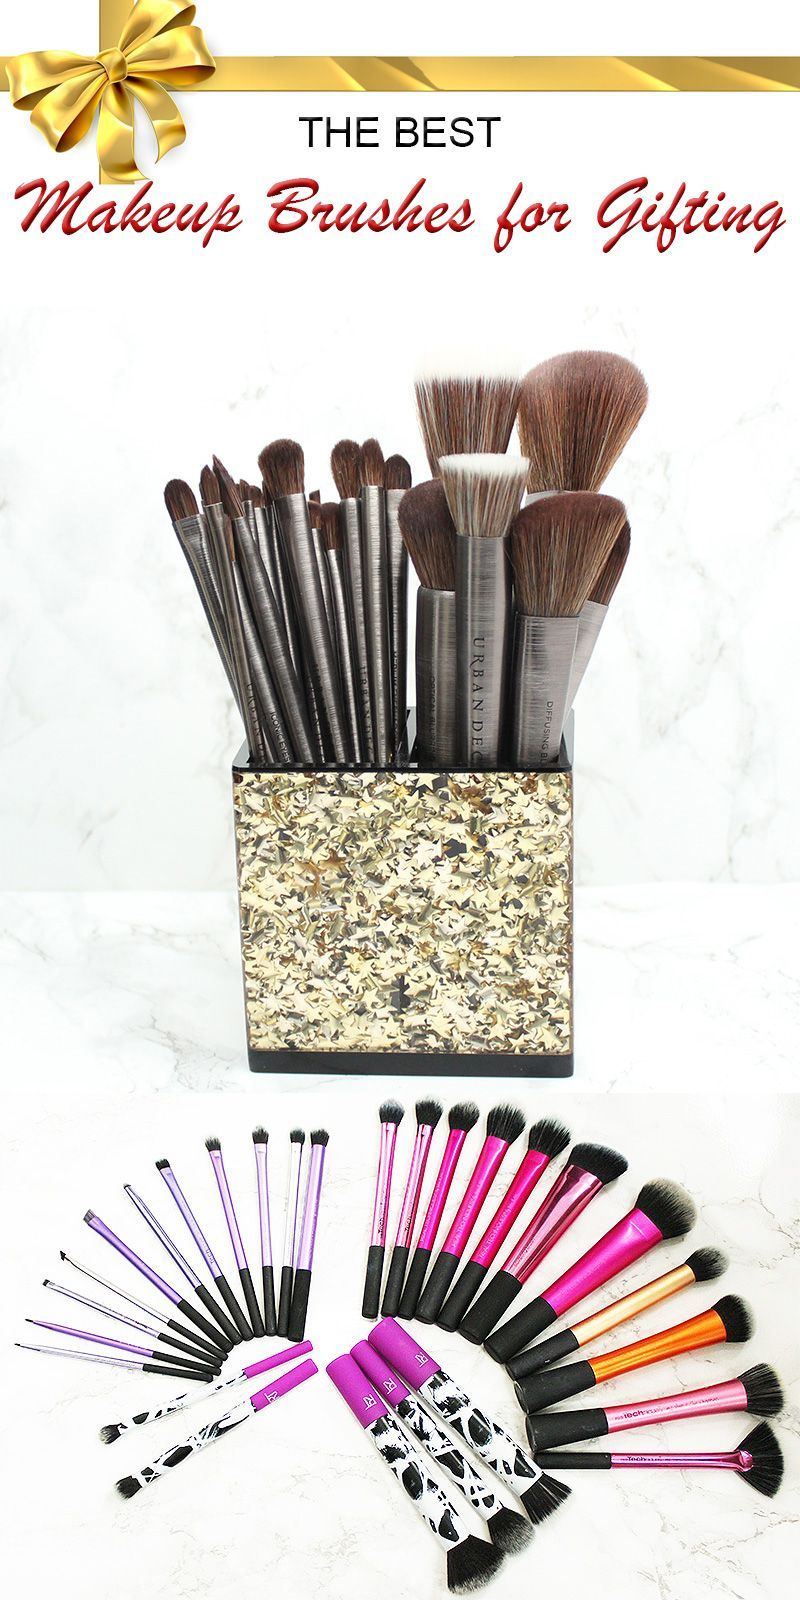 Best Cruelty Free Makeup Brushes for Gifting Cruelty